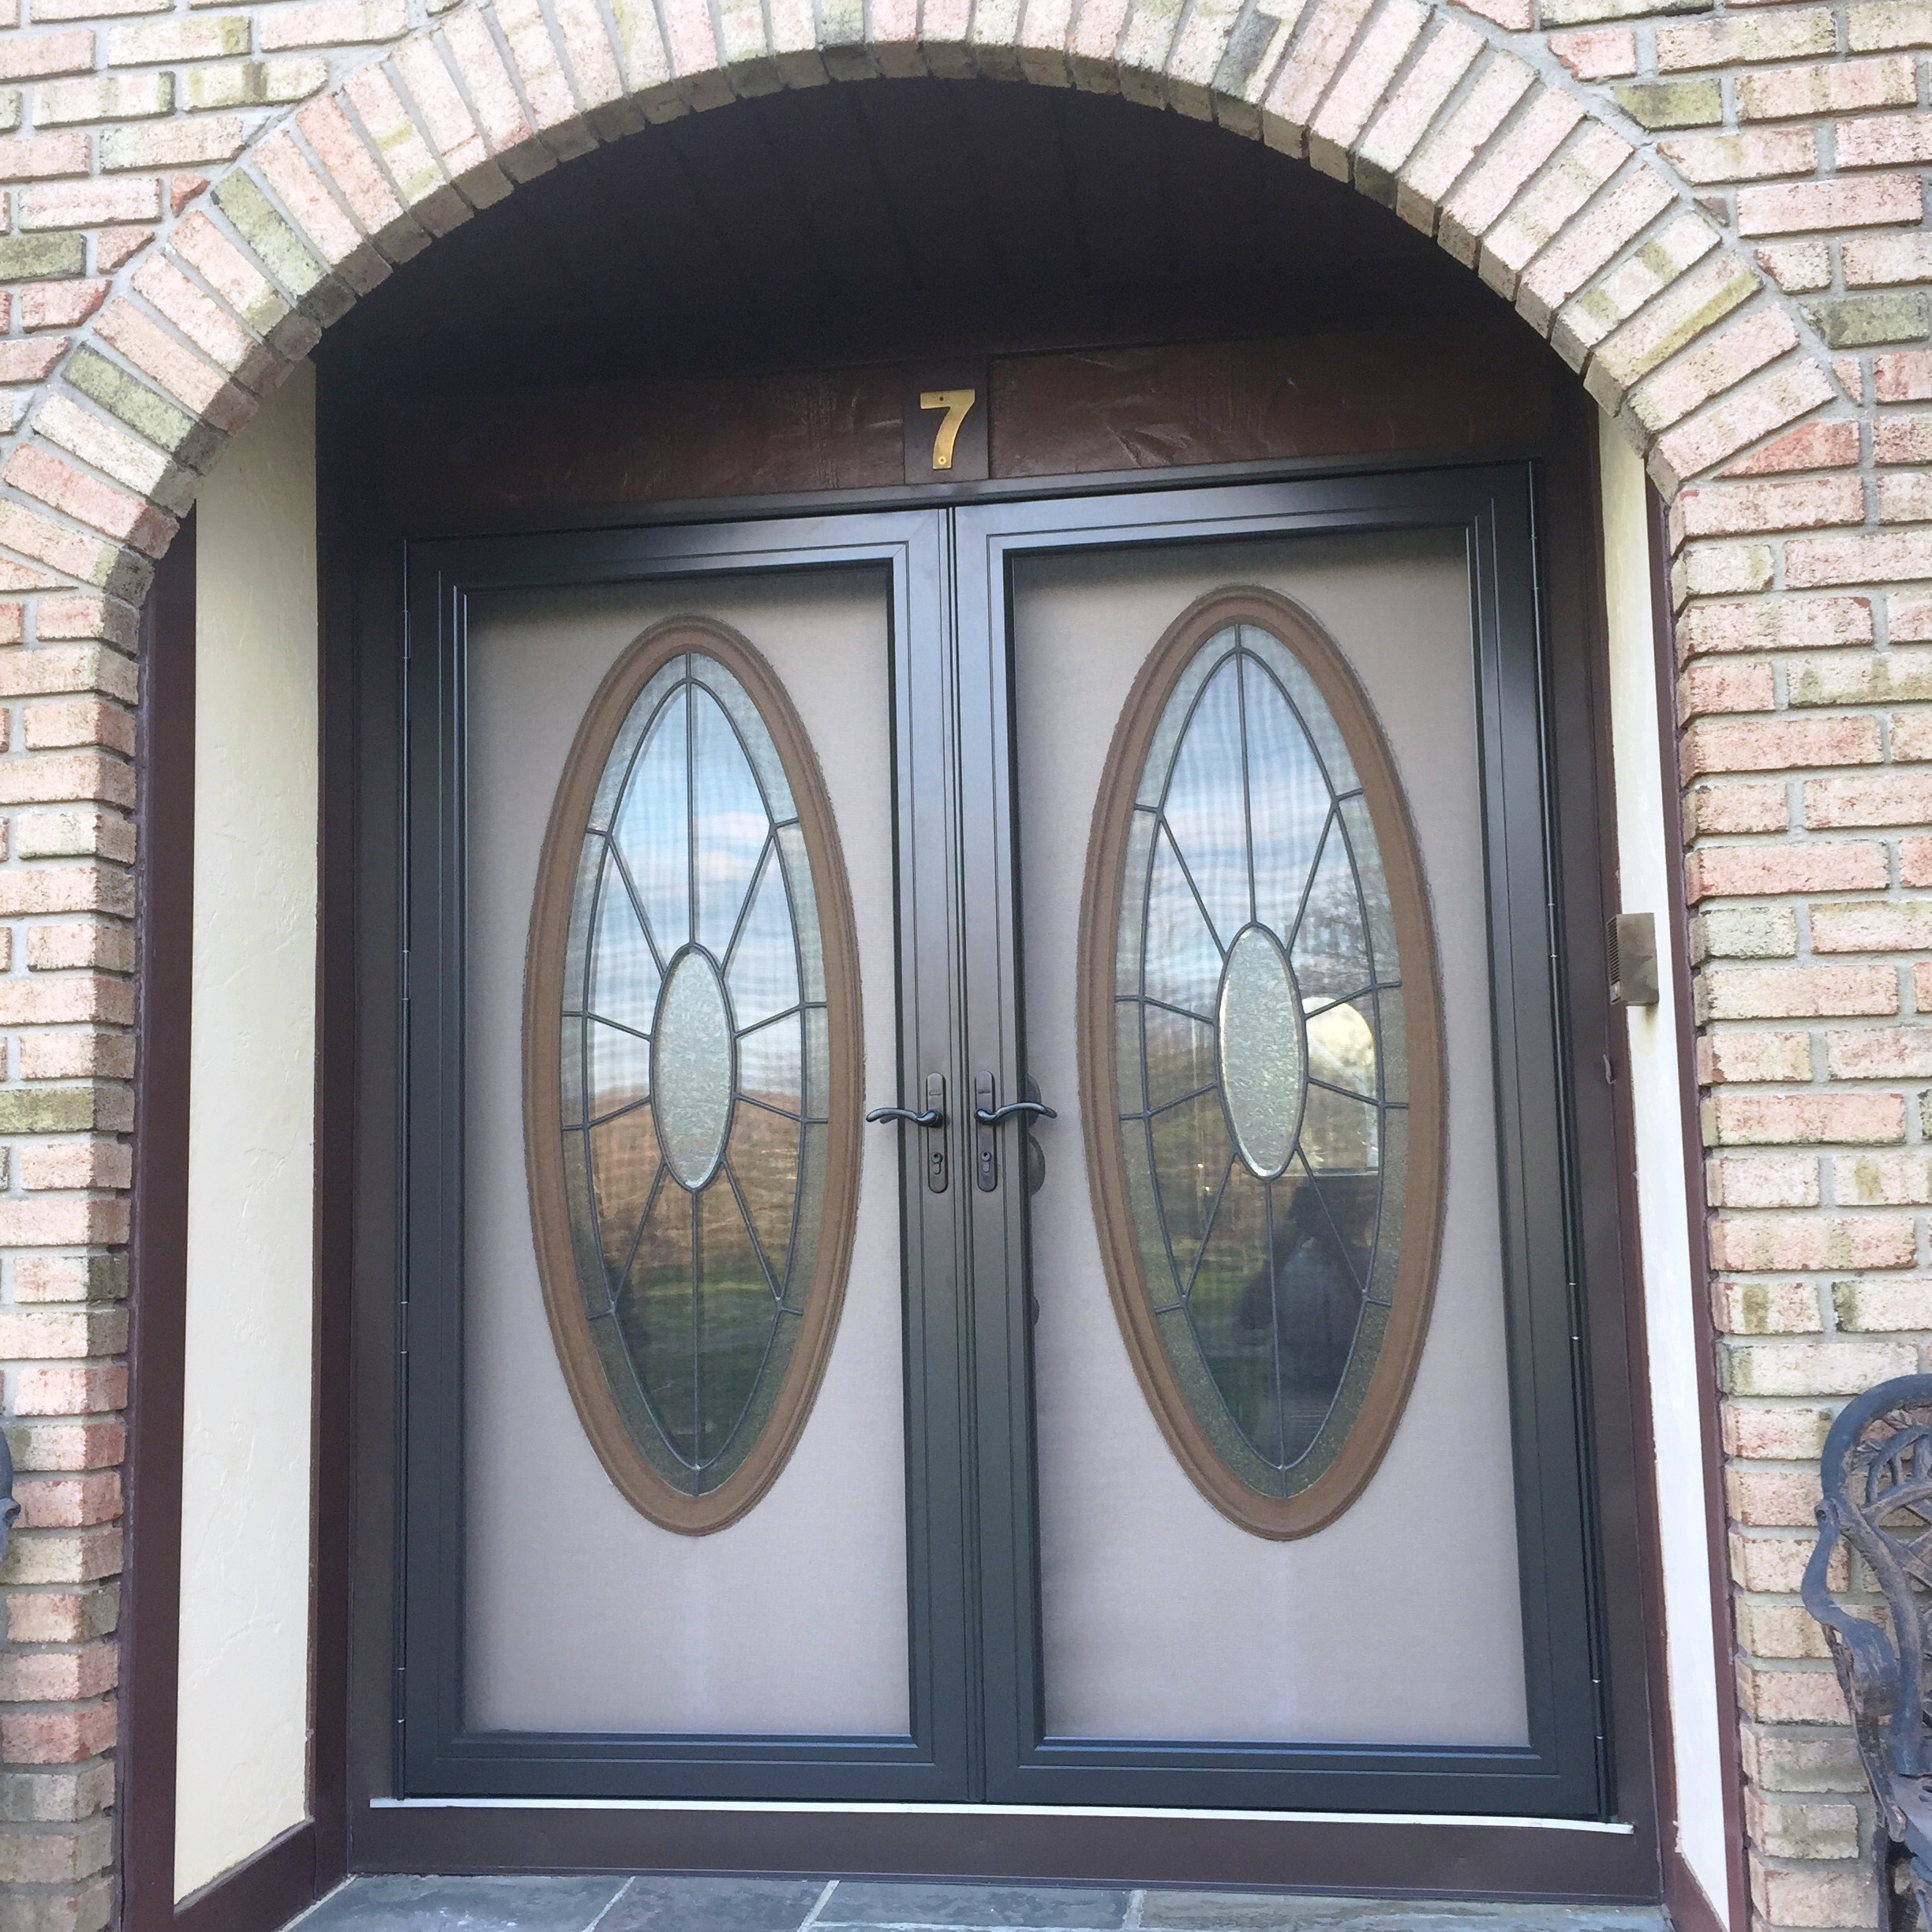 Entry doors Patio doors Interior doors Sliding doors Windows Doors Window repair Window fix Window service foggy glass Replacement windows ... & Entry doors Patio doors Interior doors Sliding doors Windows ... pezcame.com